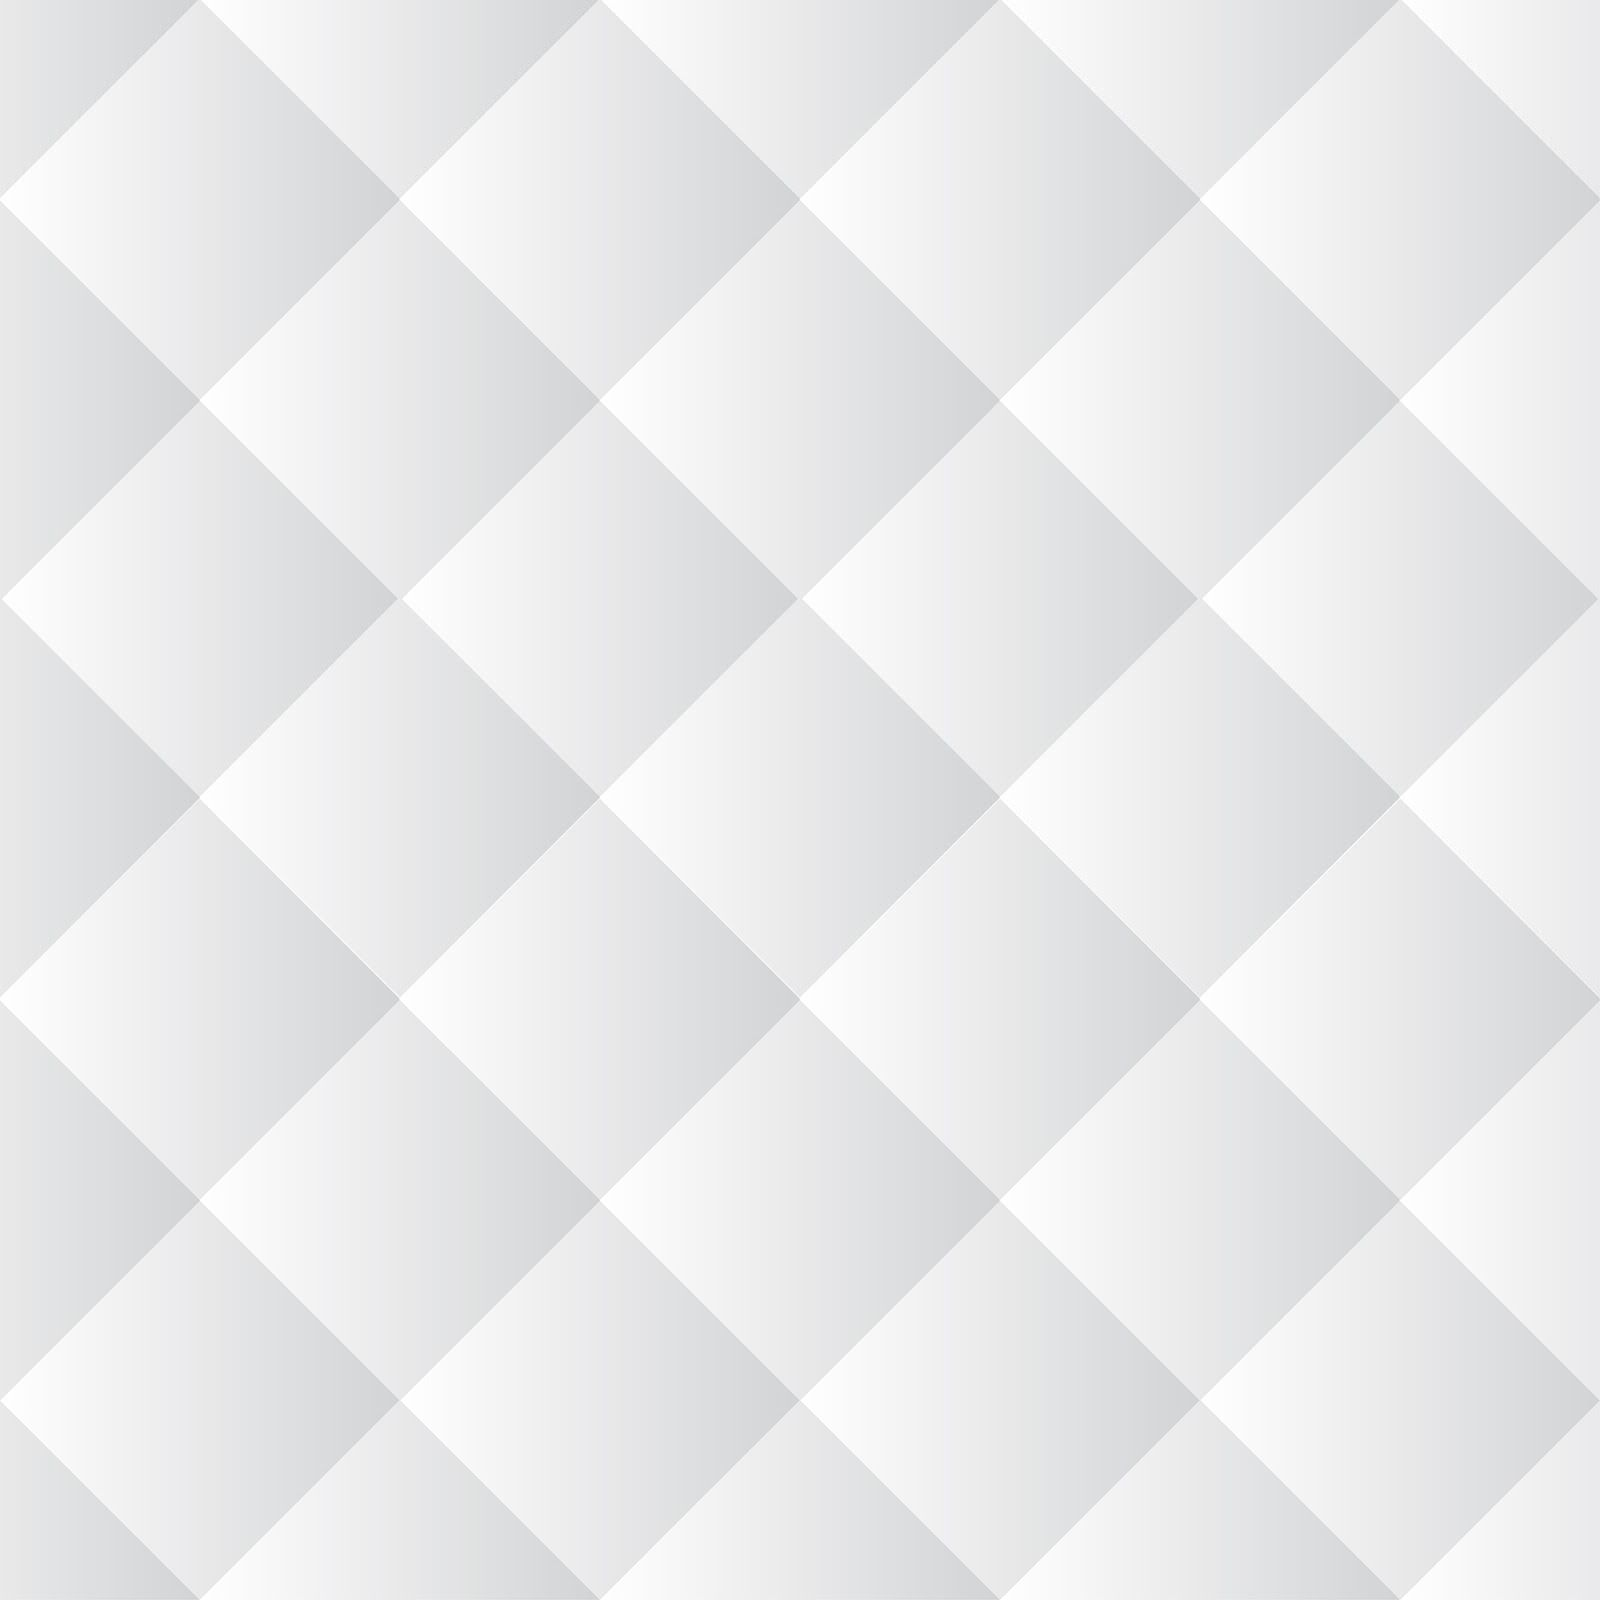 seamless-white-texture | Pattern | Pinterest | White ...